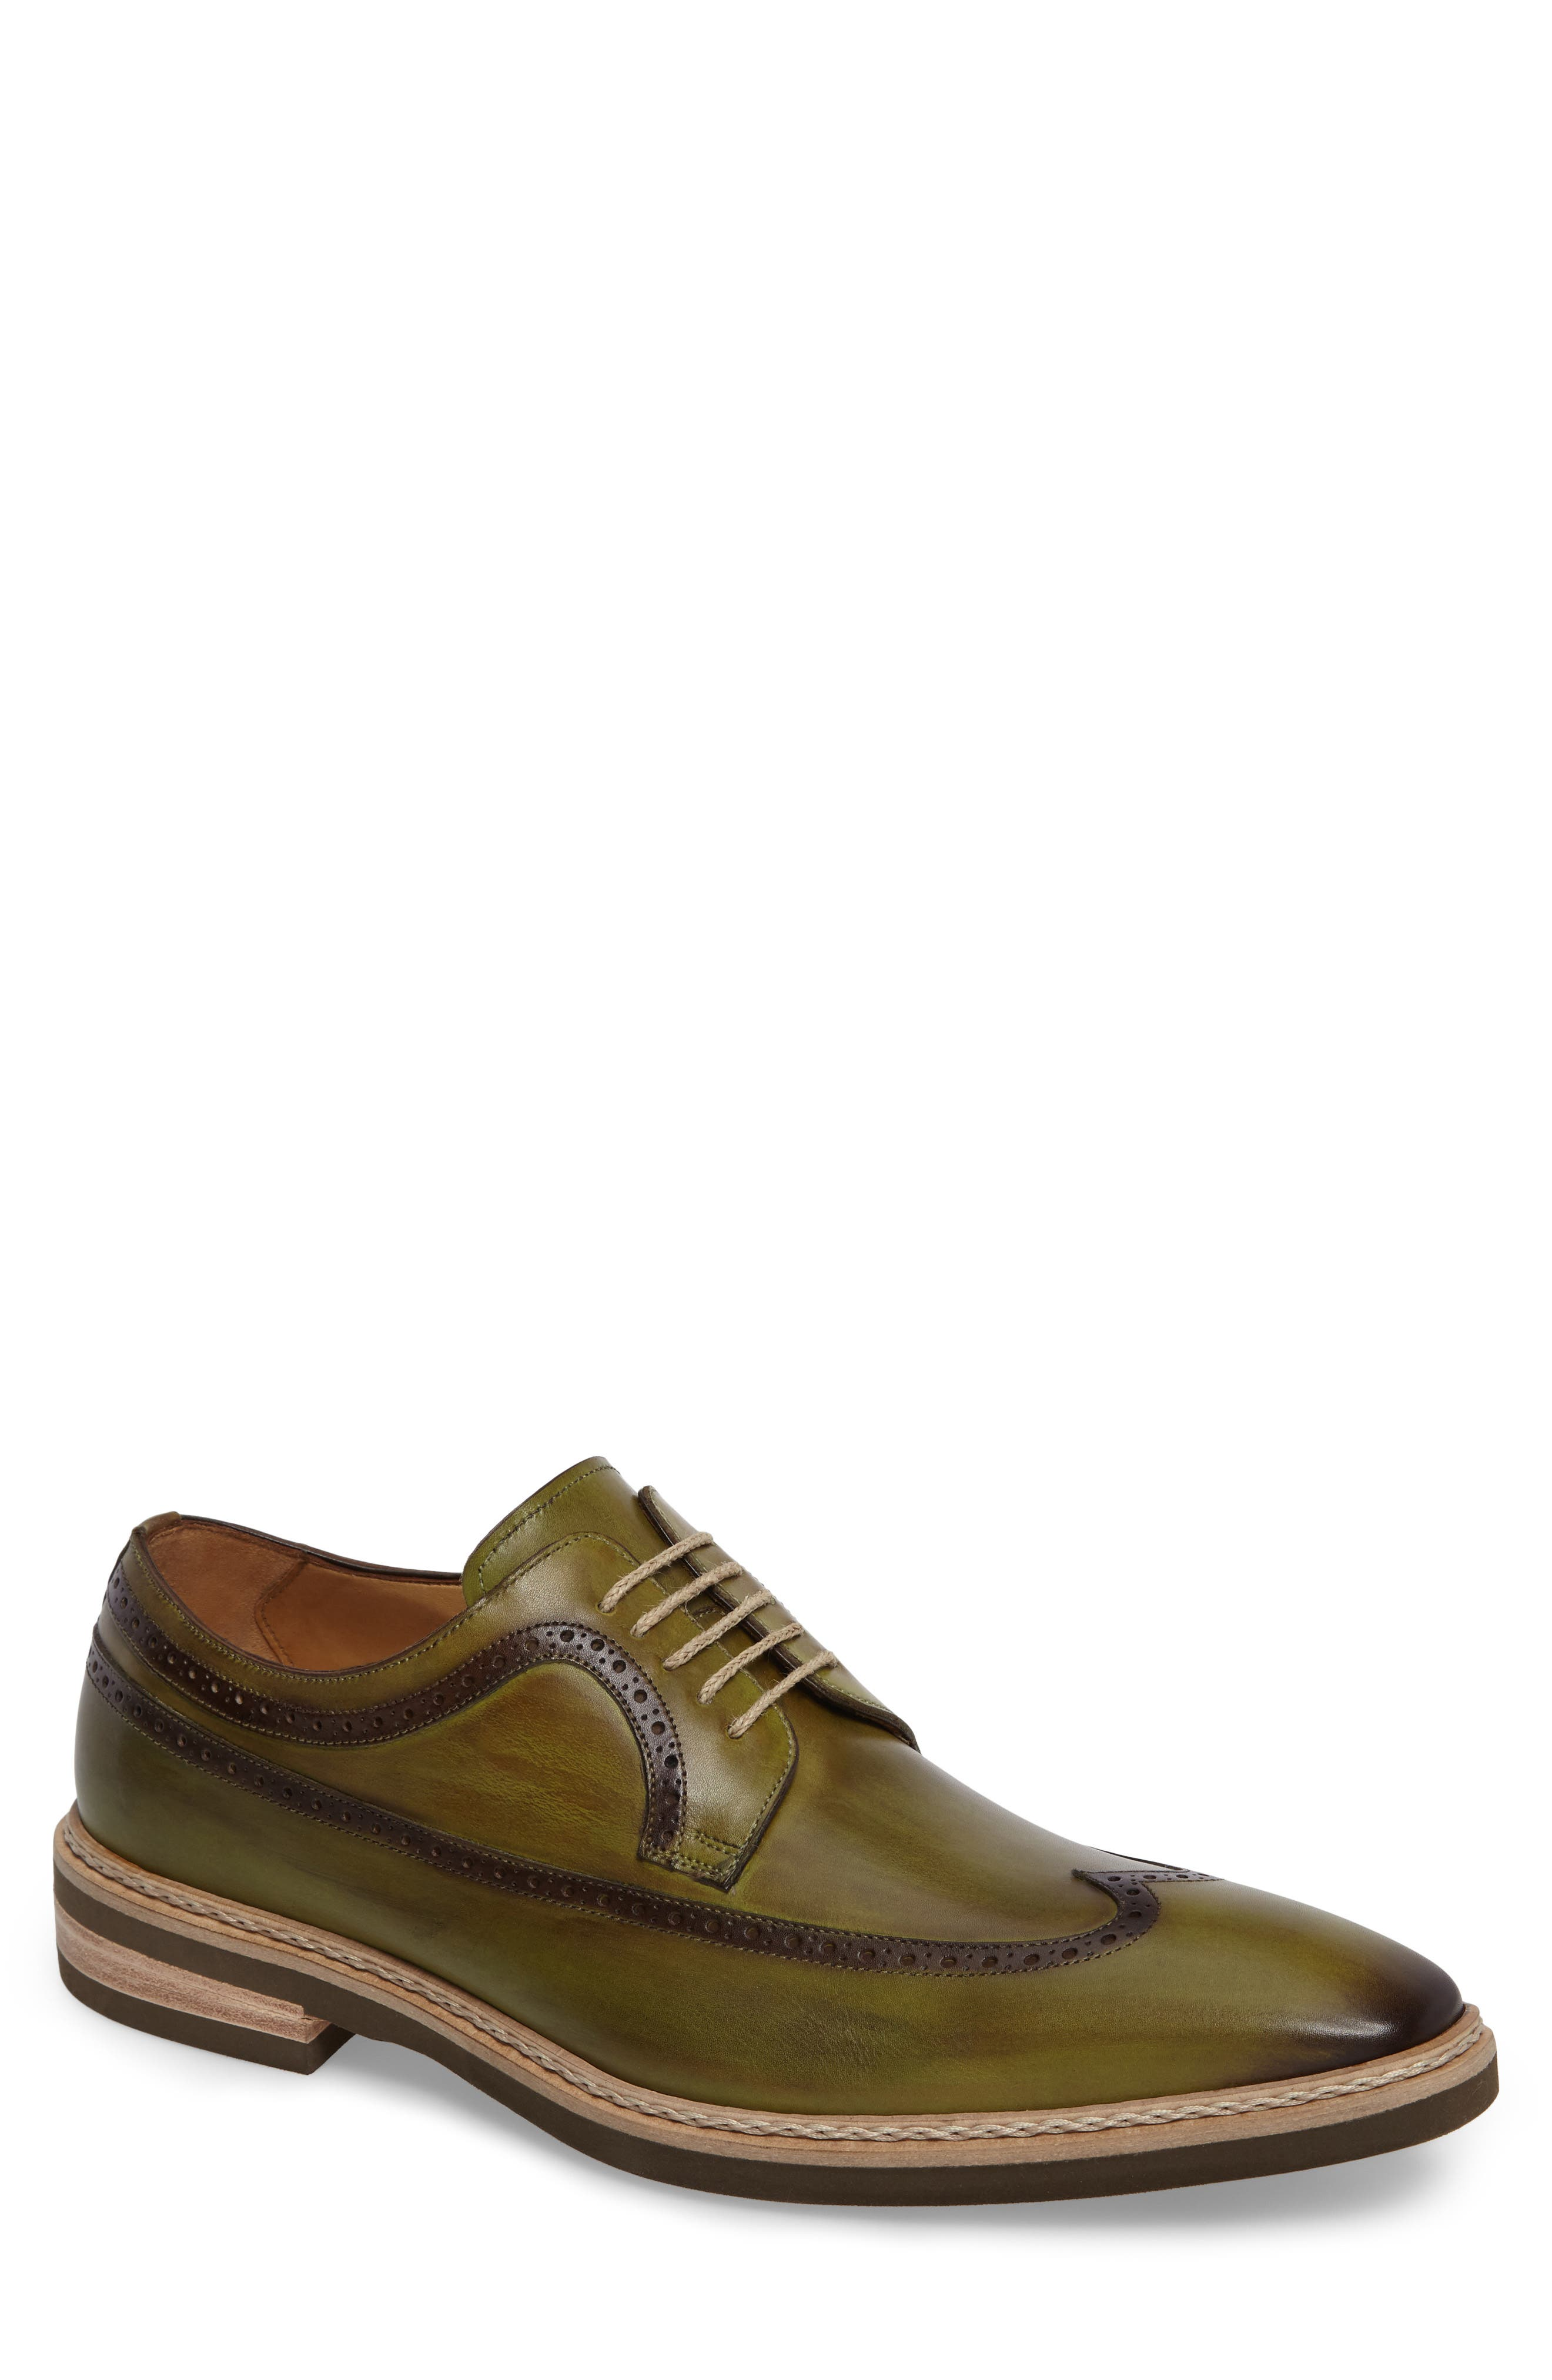 Maraval Wingtip,                             Main thumbnail 1, color,                             Olive Leather